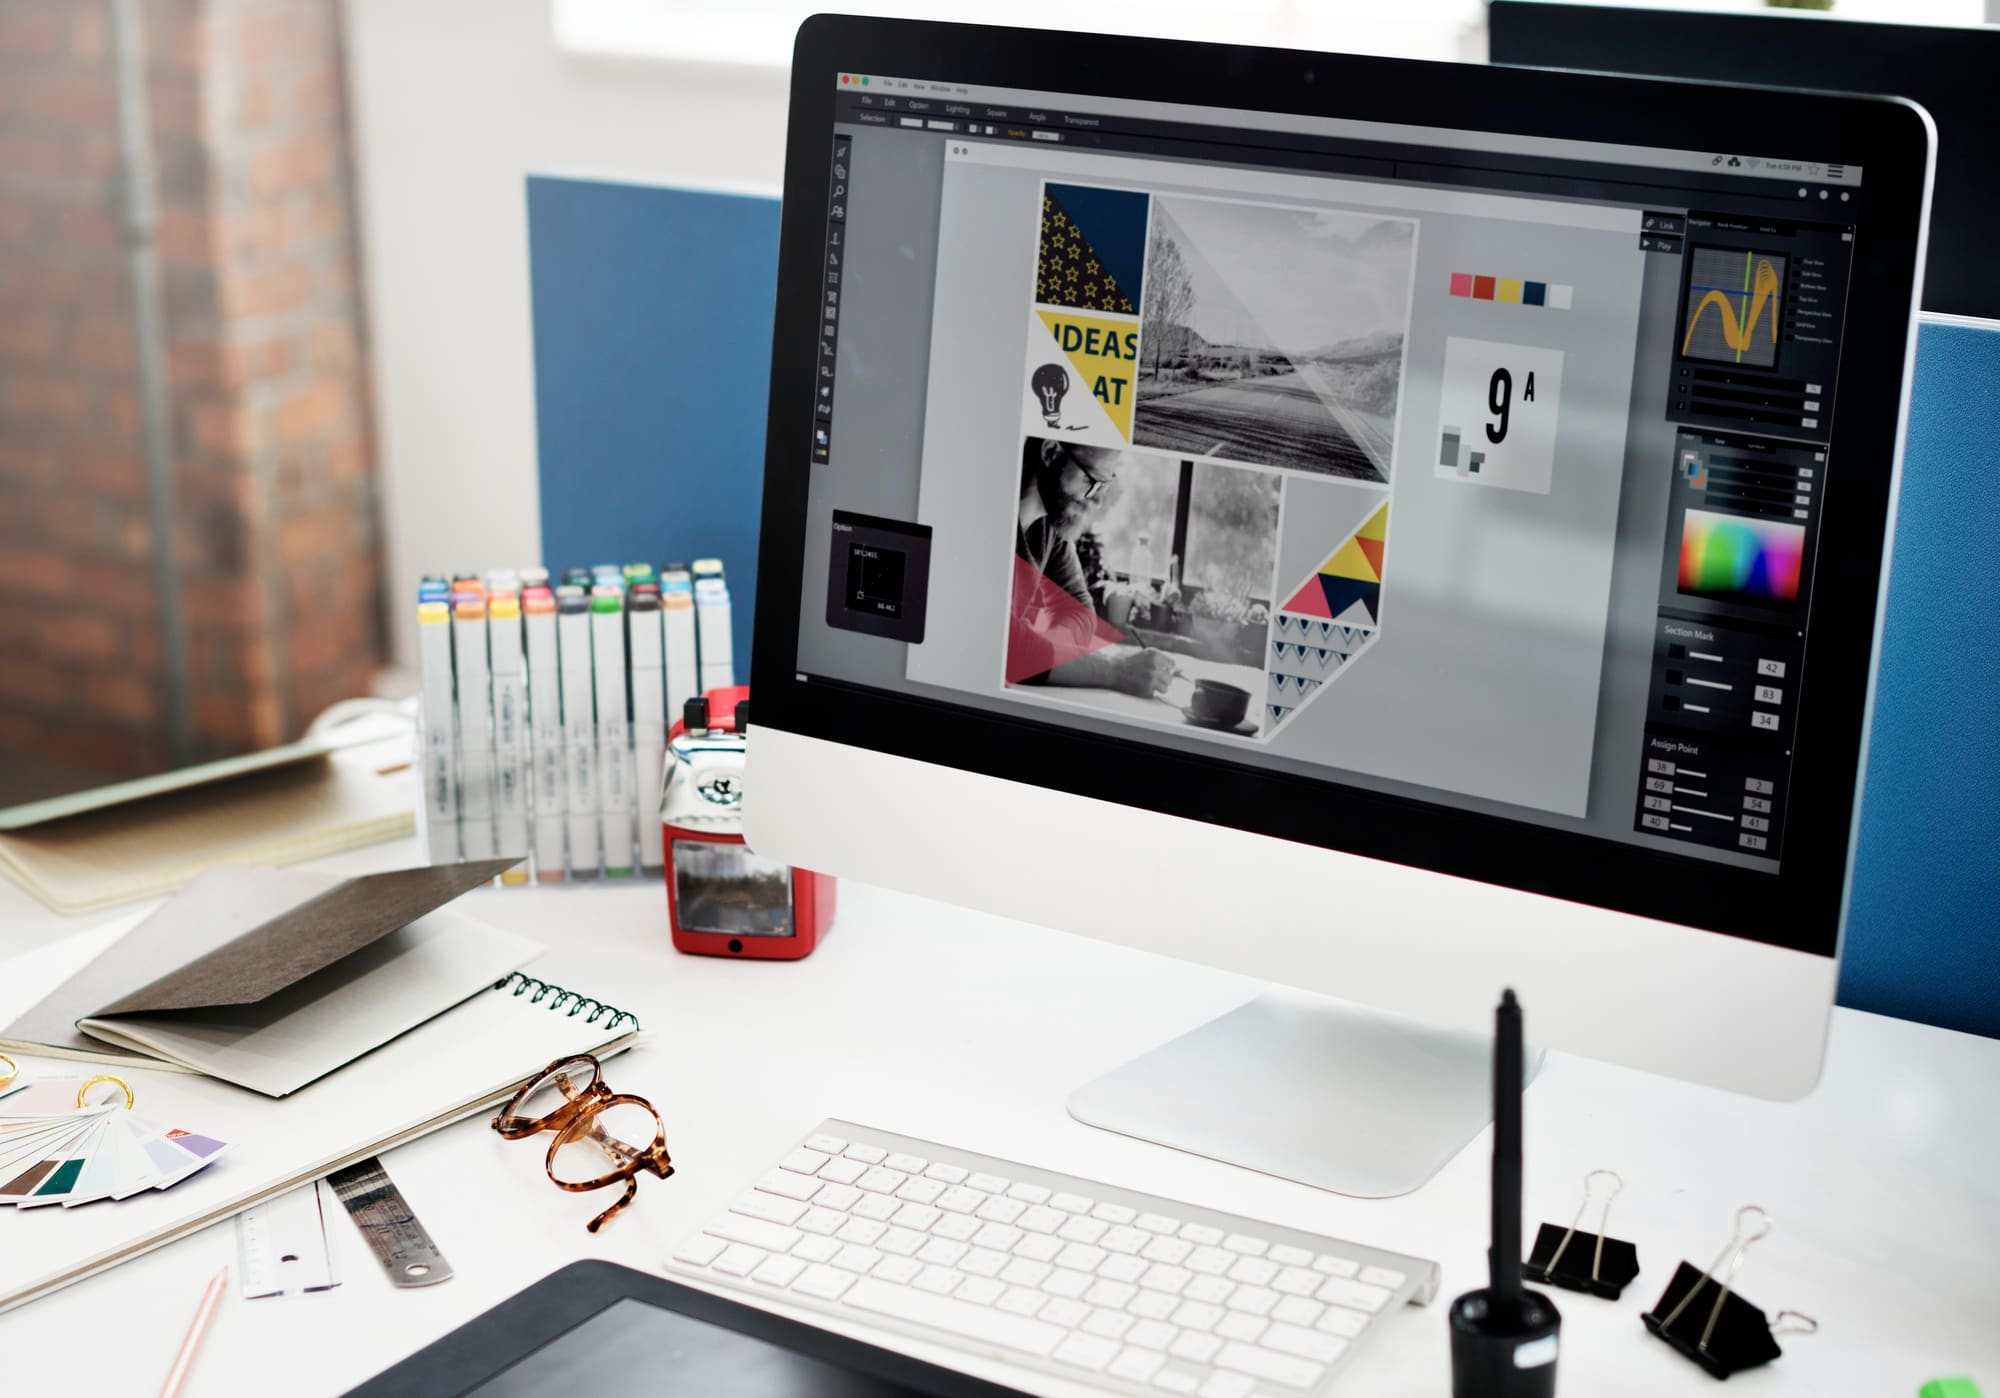 design brief for a client being shown on a computer screen